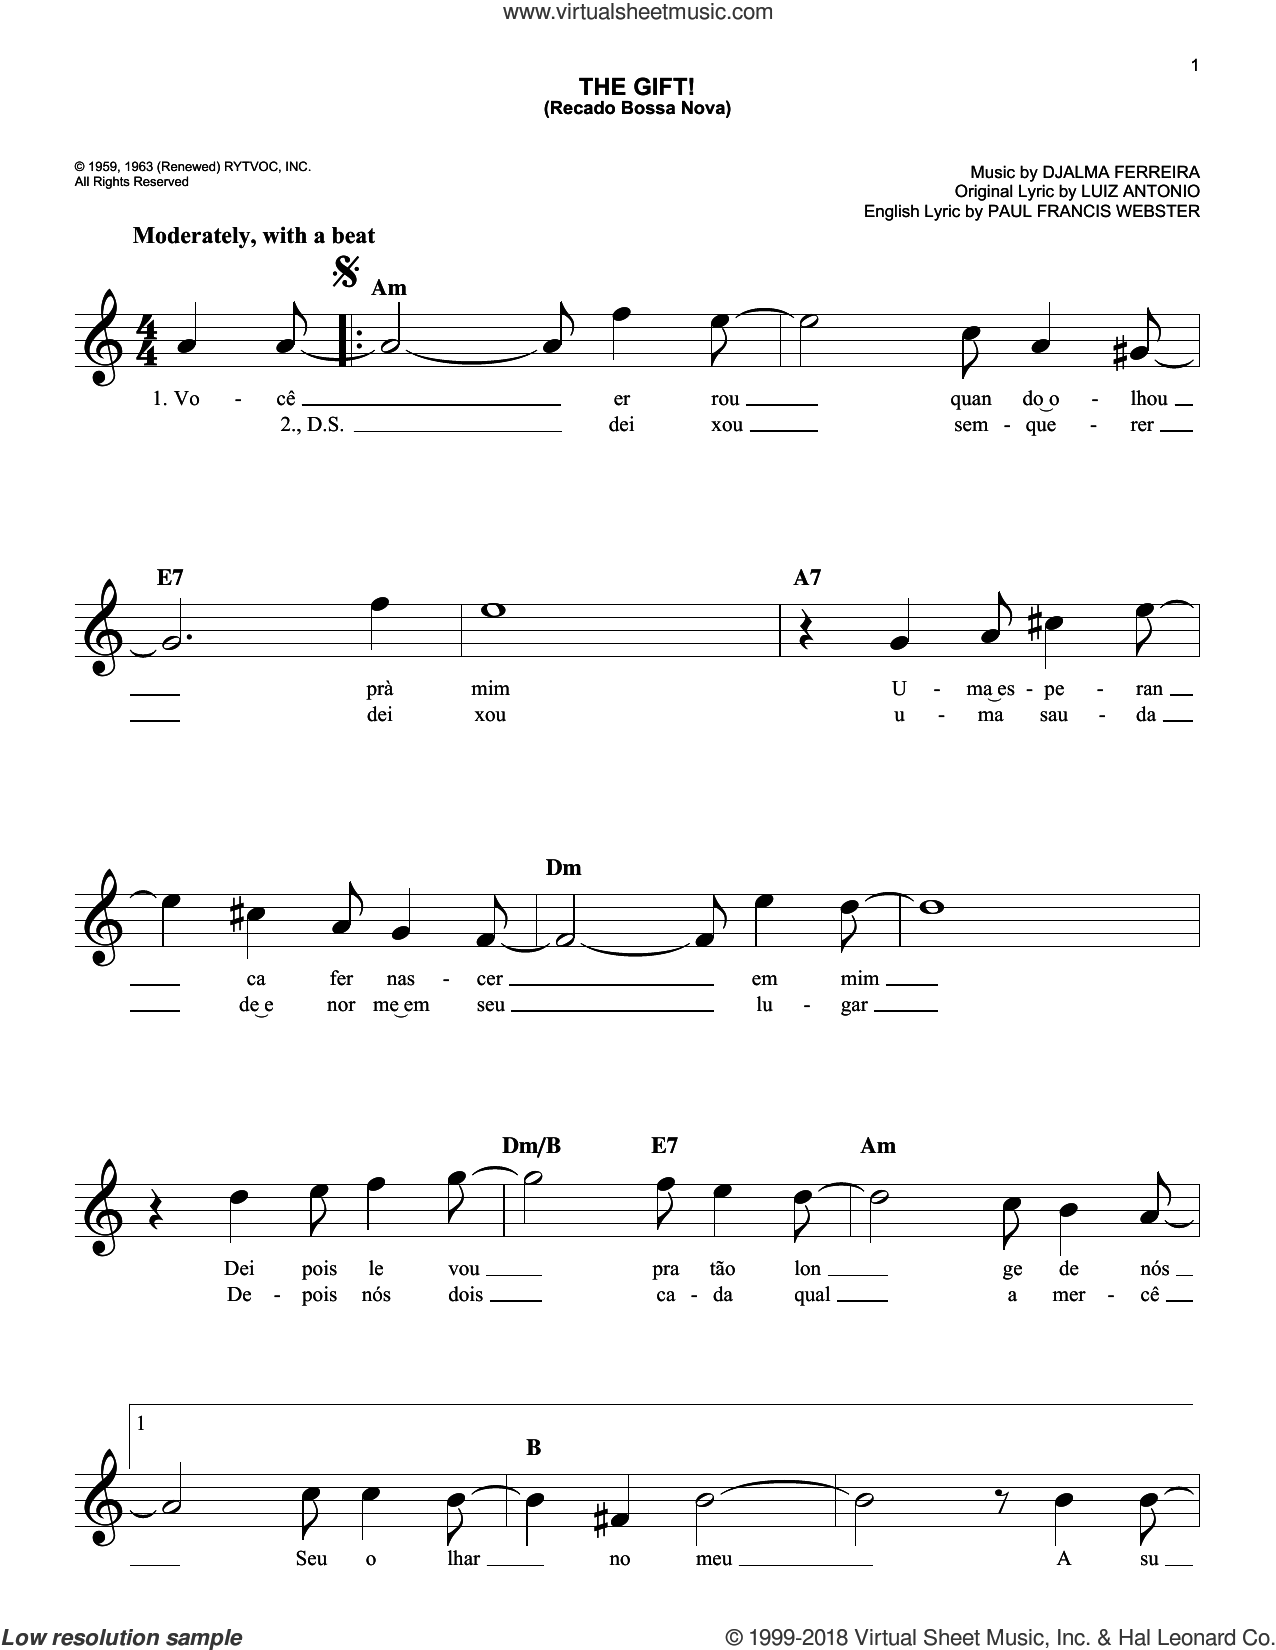 The Gift! (Recado Bossa Nova) sheet music for voice and other instruments (fake book) by Djalma Ferreira, Luiz Antonio and Paul Francis Webster, intermediate skill level